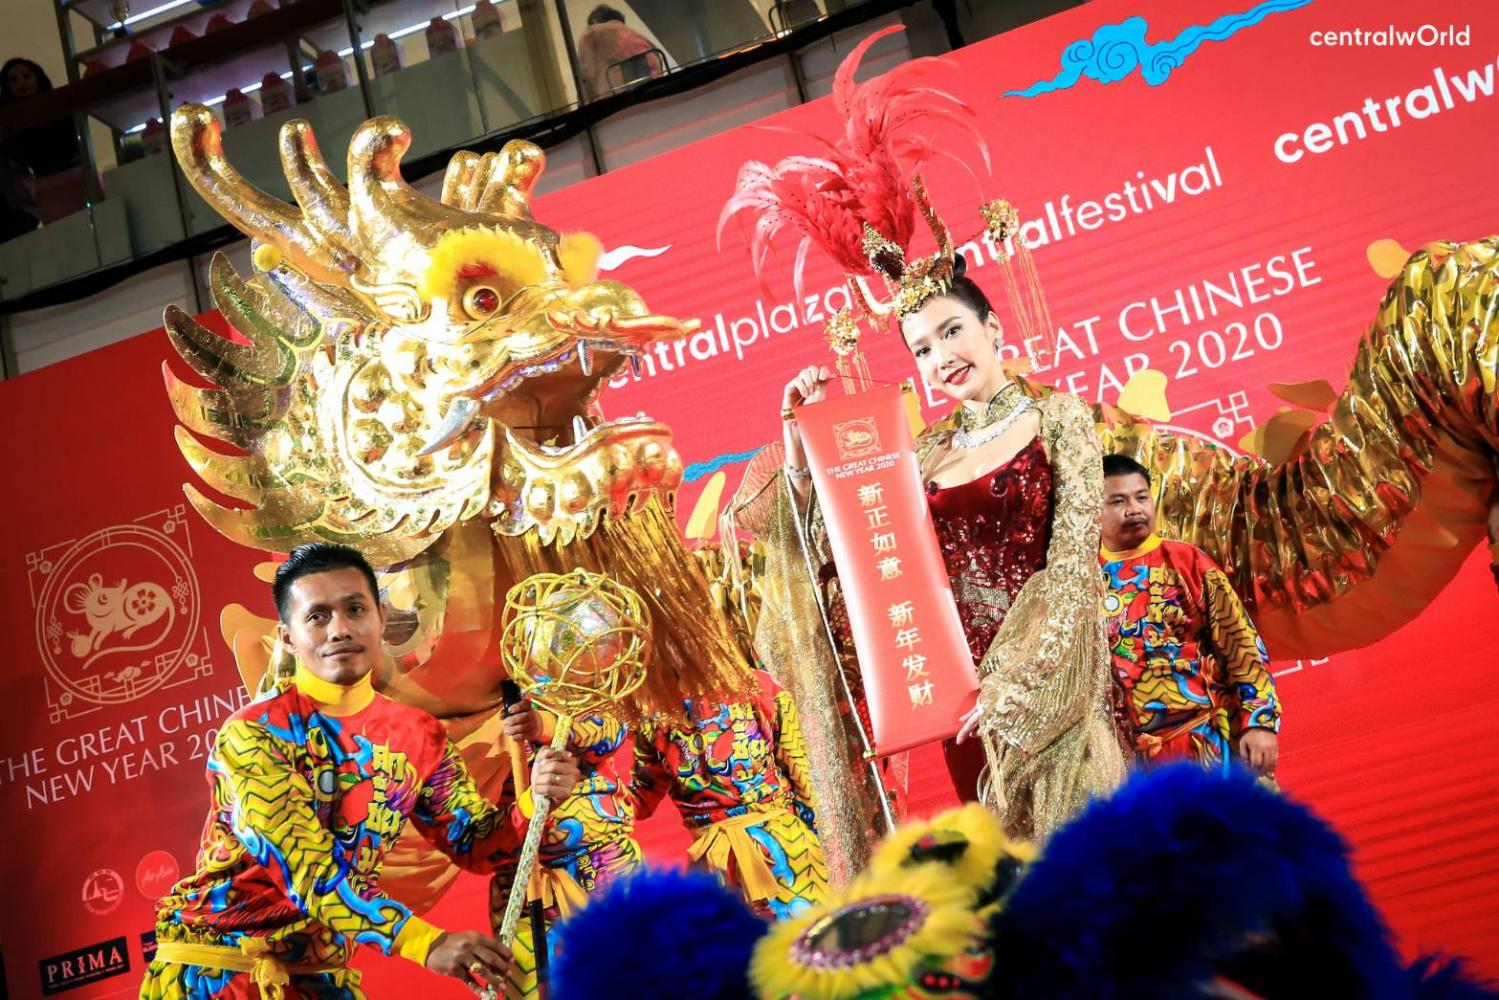 Costumed performers at the opening of 'The Great China Bazaar', which runs through Feb 9.